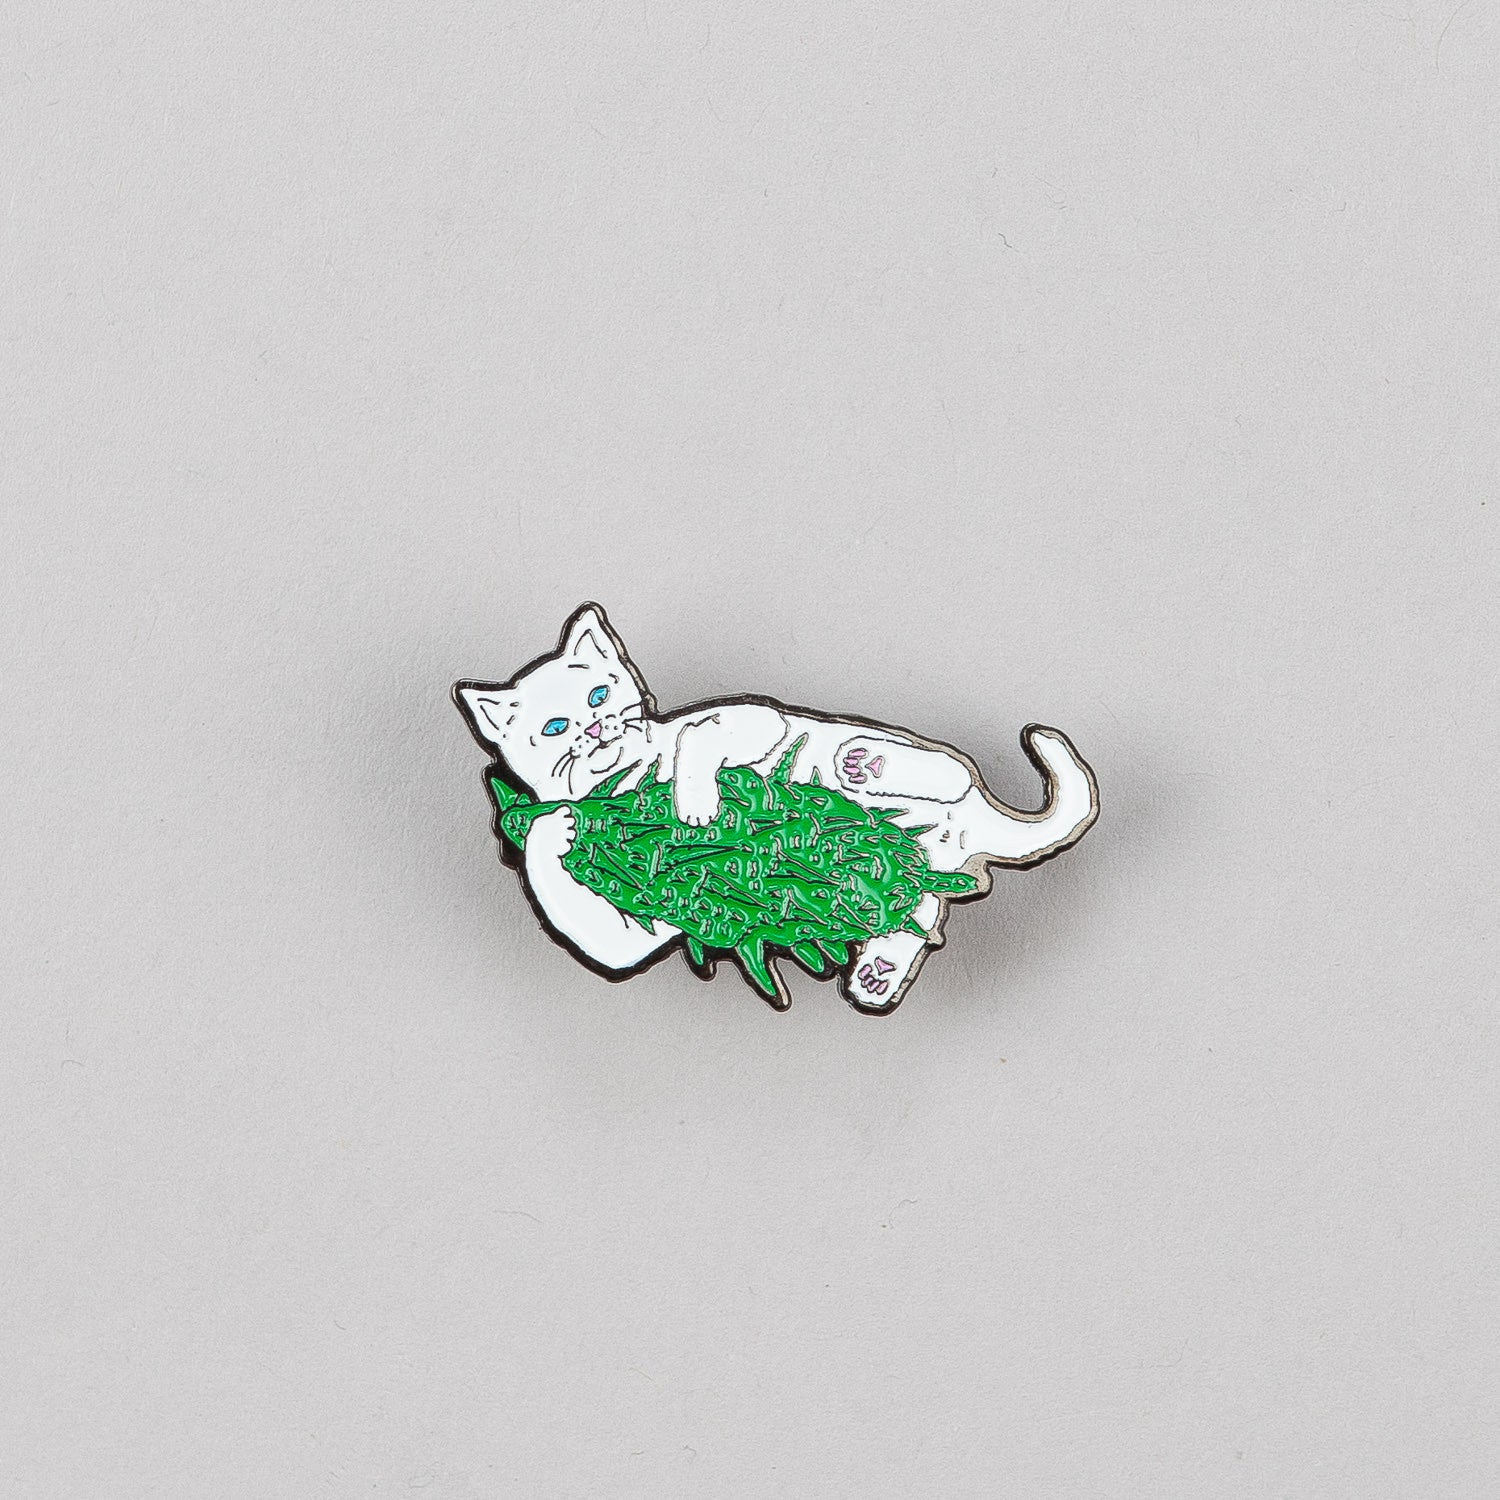 Rip N Dip Nermal Nug Pin Badge